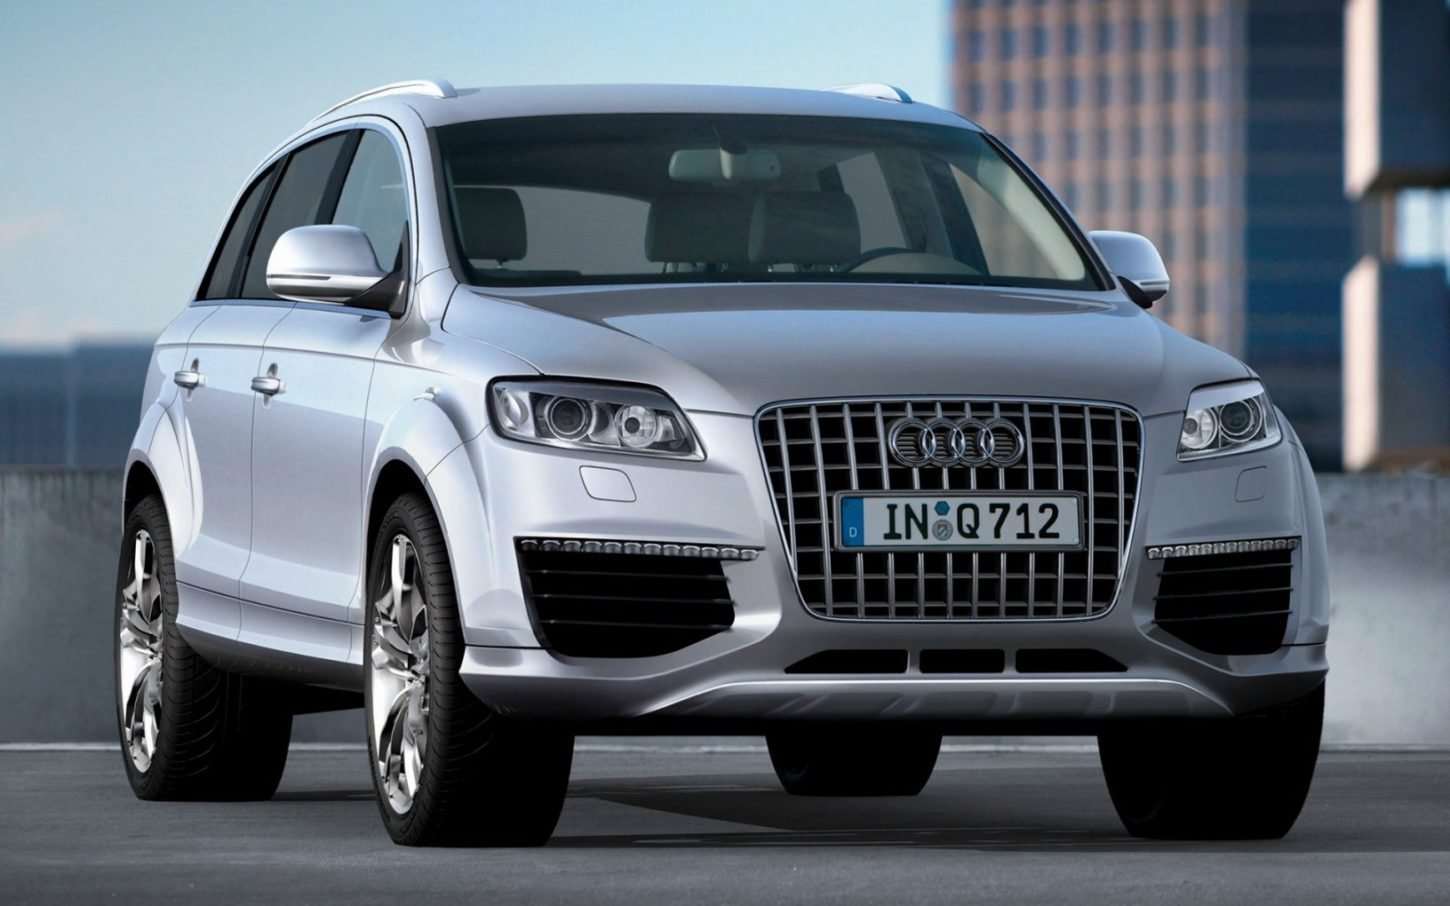 New 2019 Audi Q7 Exterior Hd Photo Car Preview And Rumors On This Month